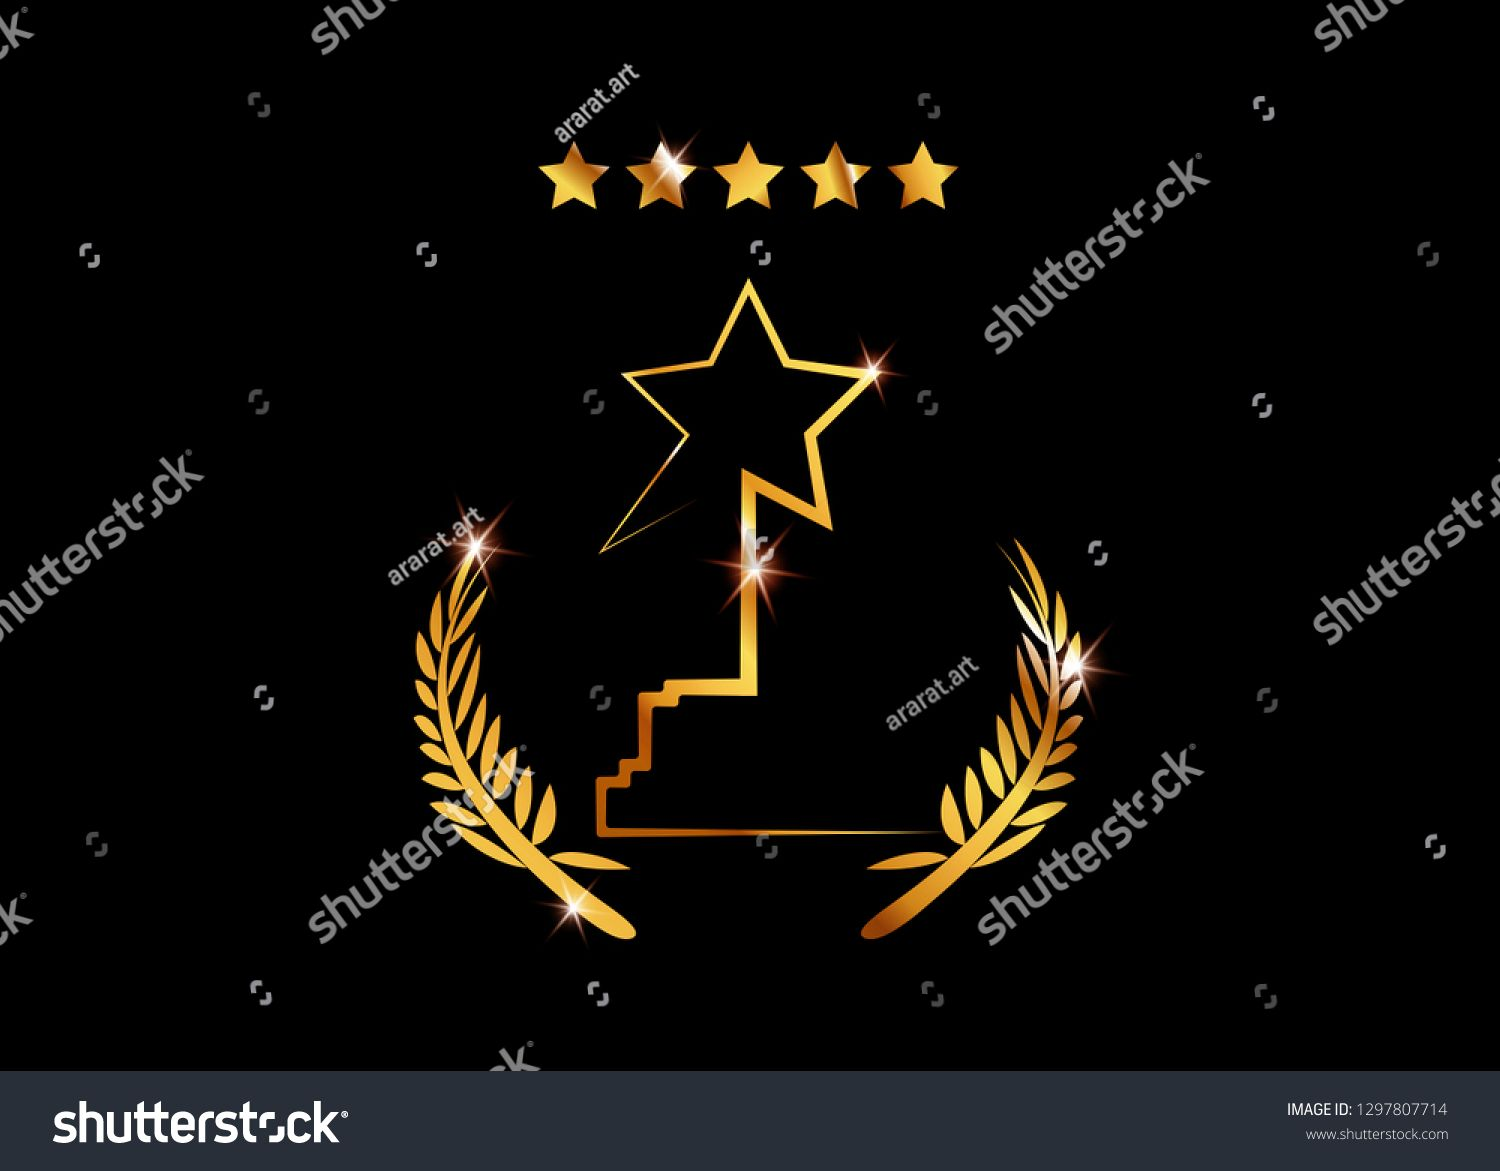 Film Award For The Best Film Movie Party Gold Star Award Statue Prize Giving Ceremony Golden Stars Prize Concept Silhoue Film Awards Movie Party Star Awards